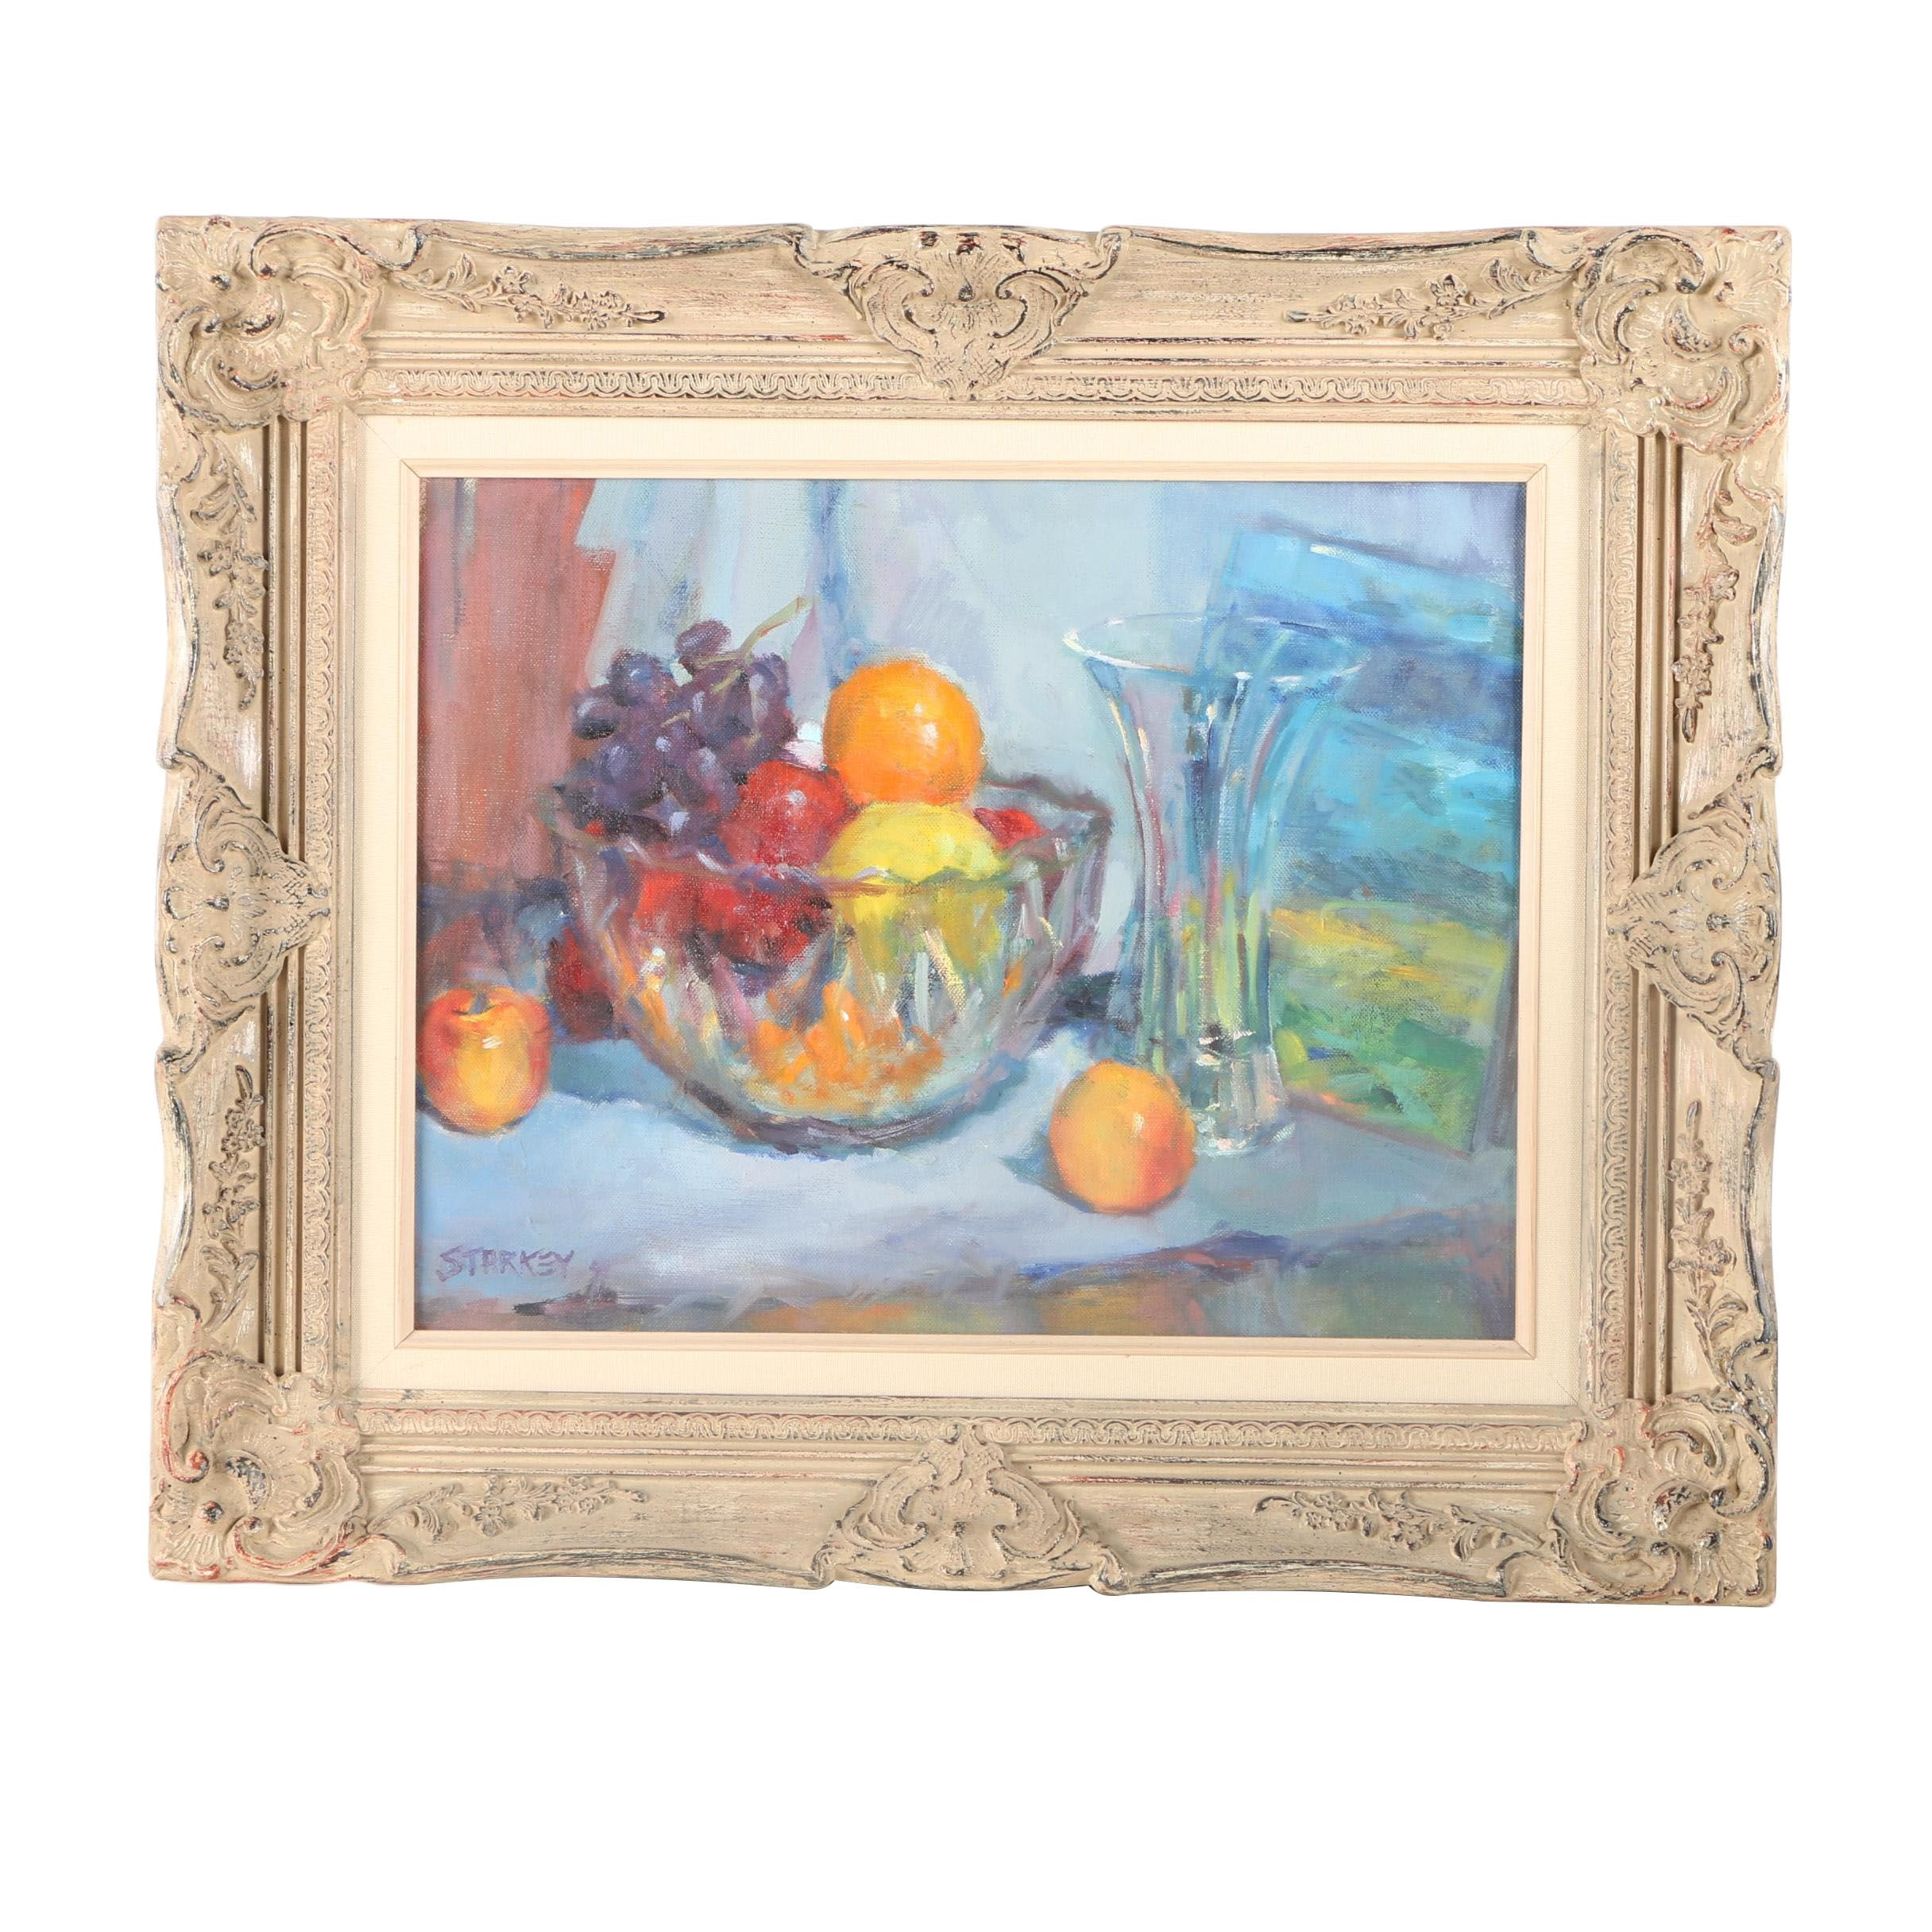 Starkey Oil Painting on Canvas of Still Life